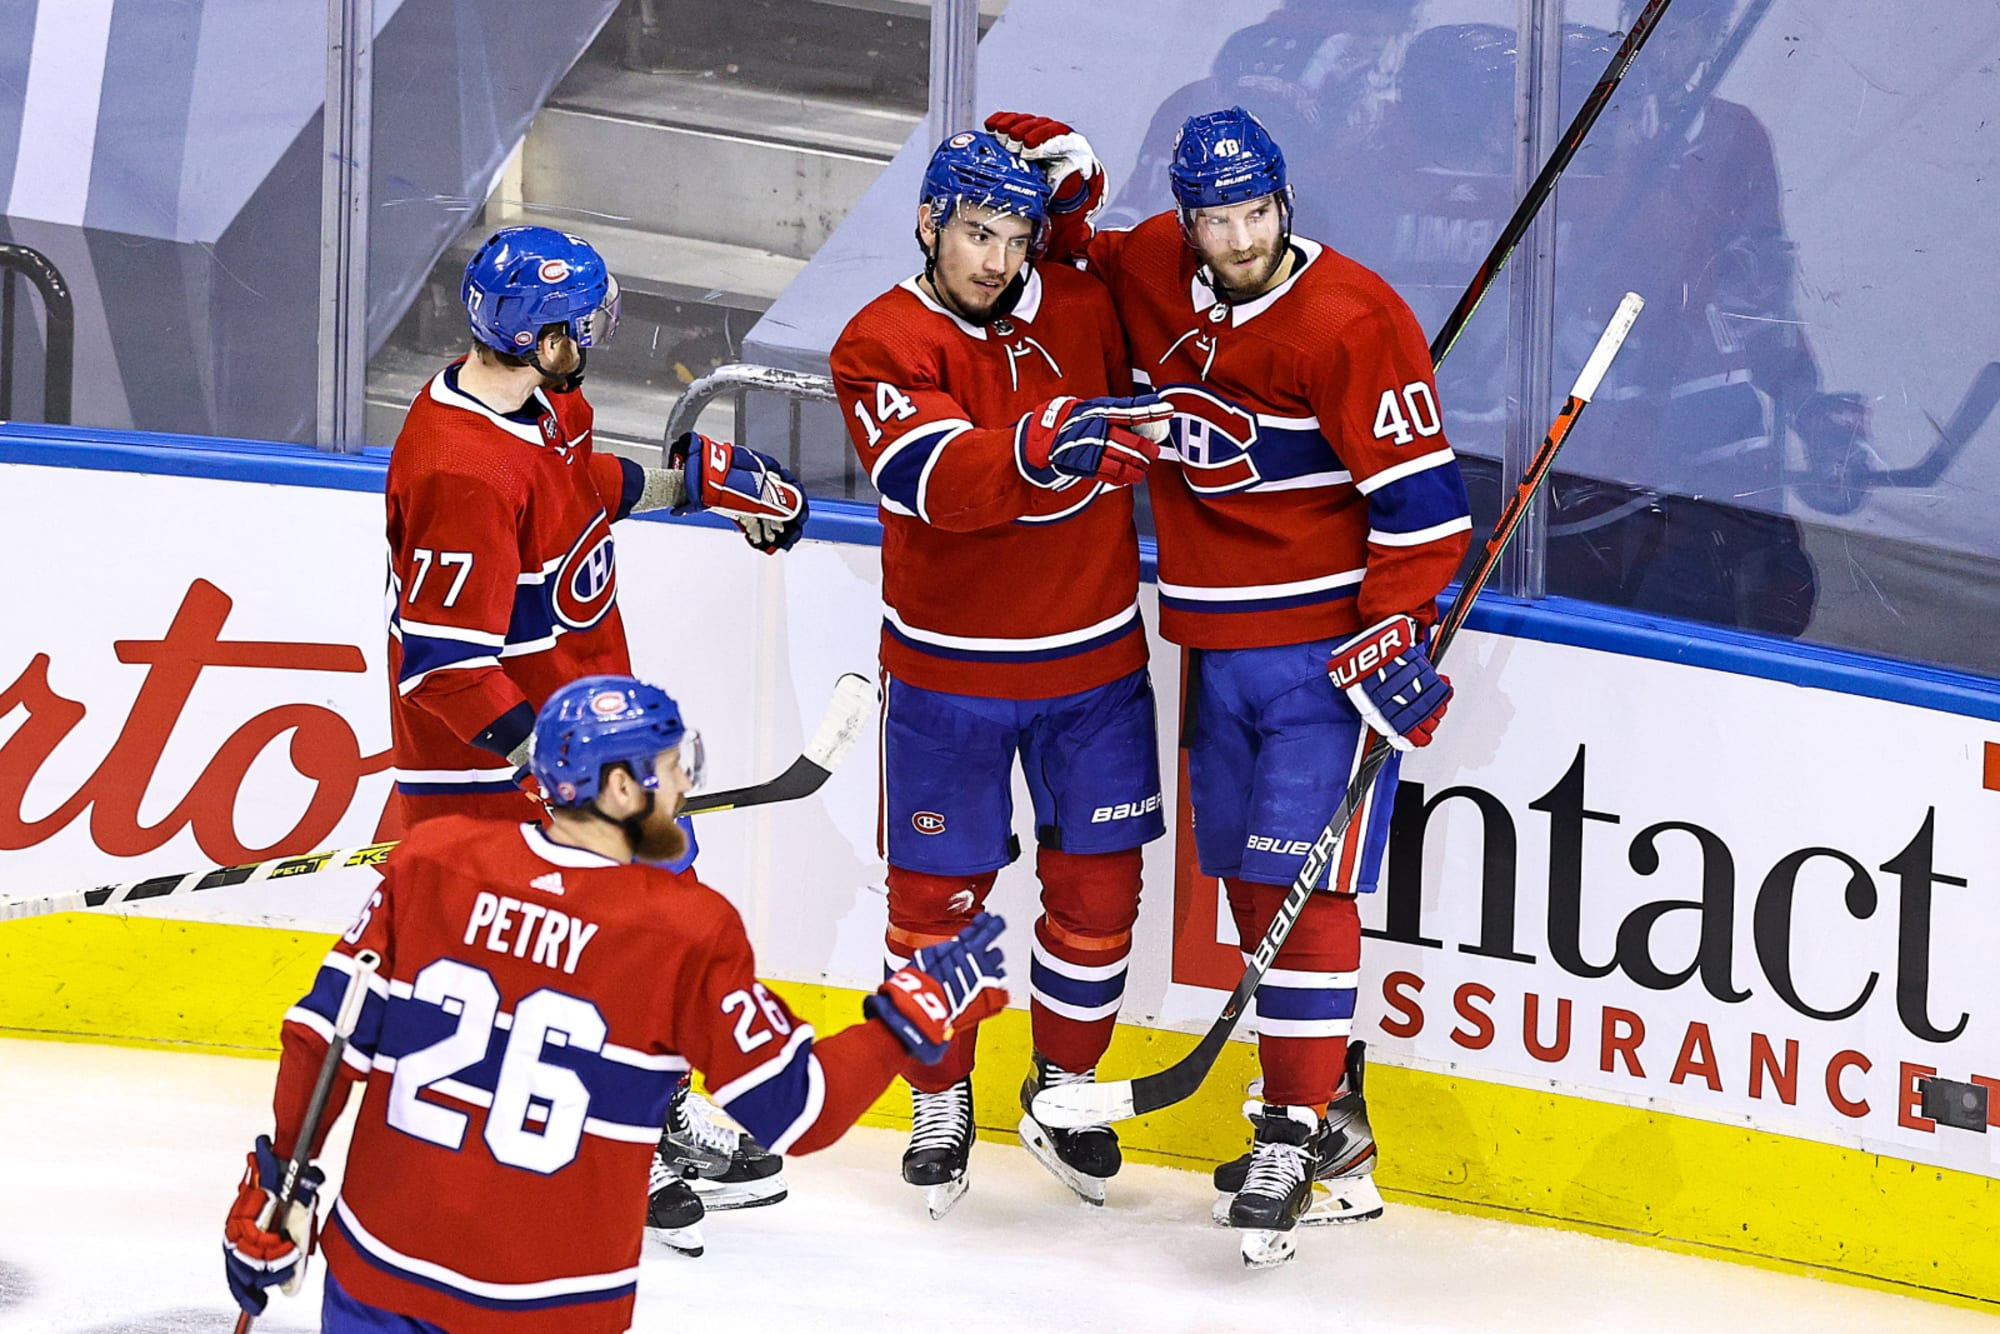 Canadiens 2020 21 Will Be A Pivotal Season For Future Of Franchise